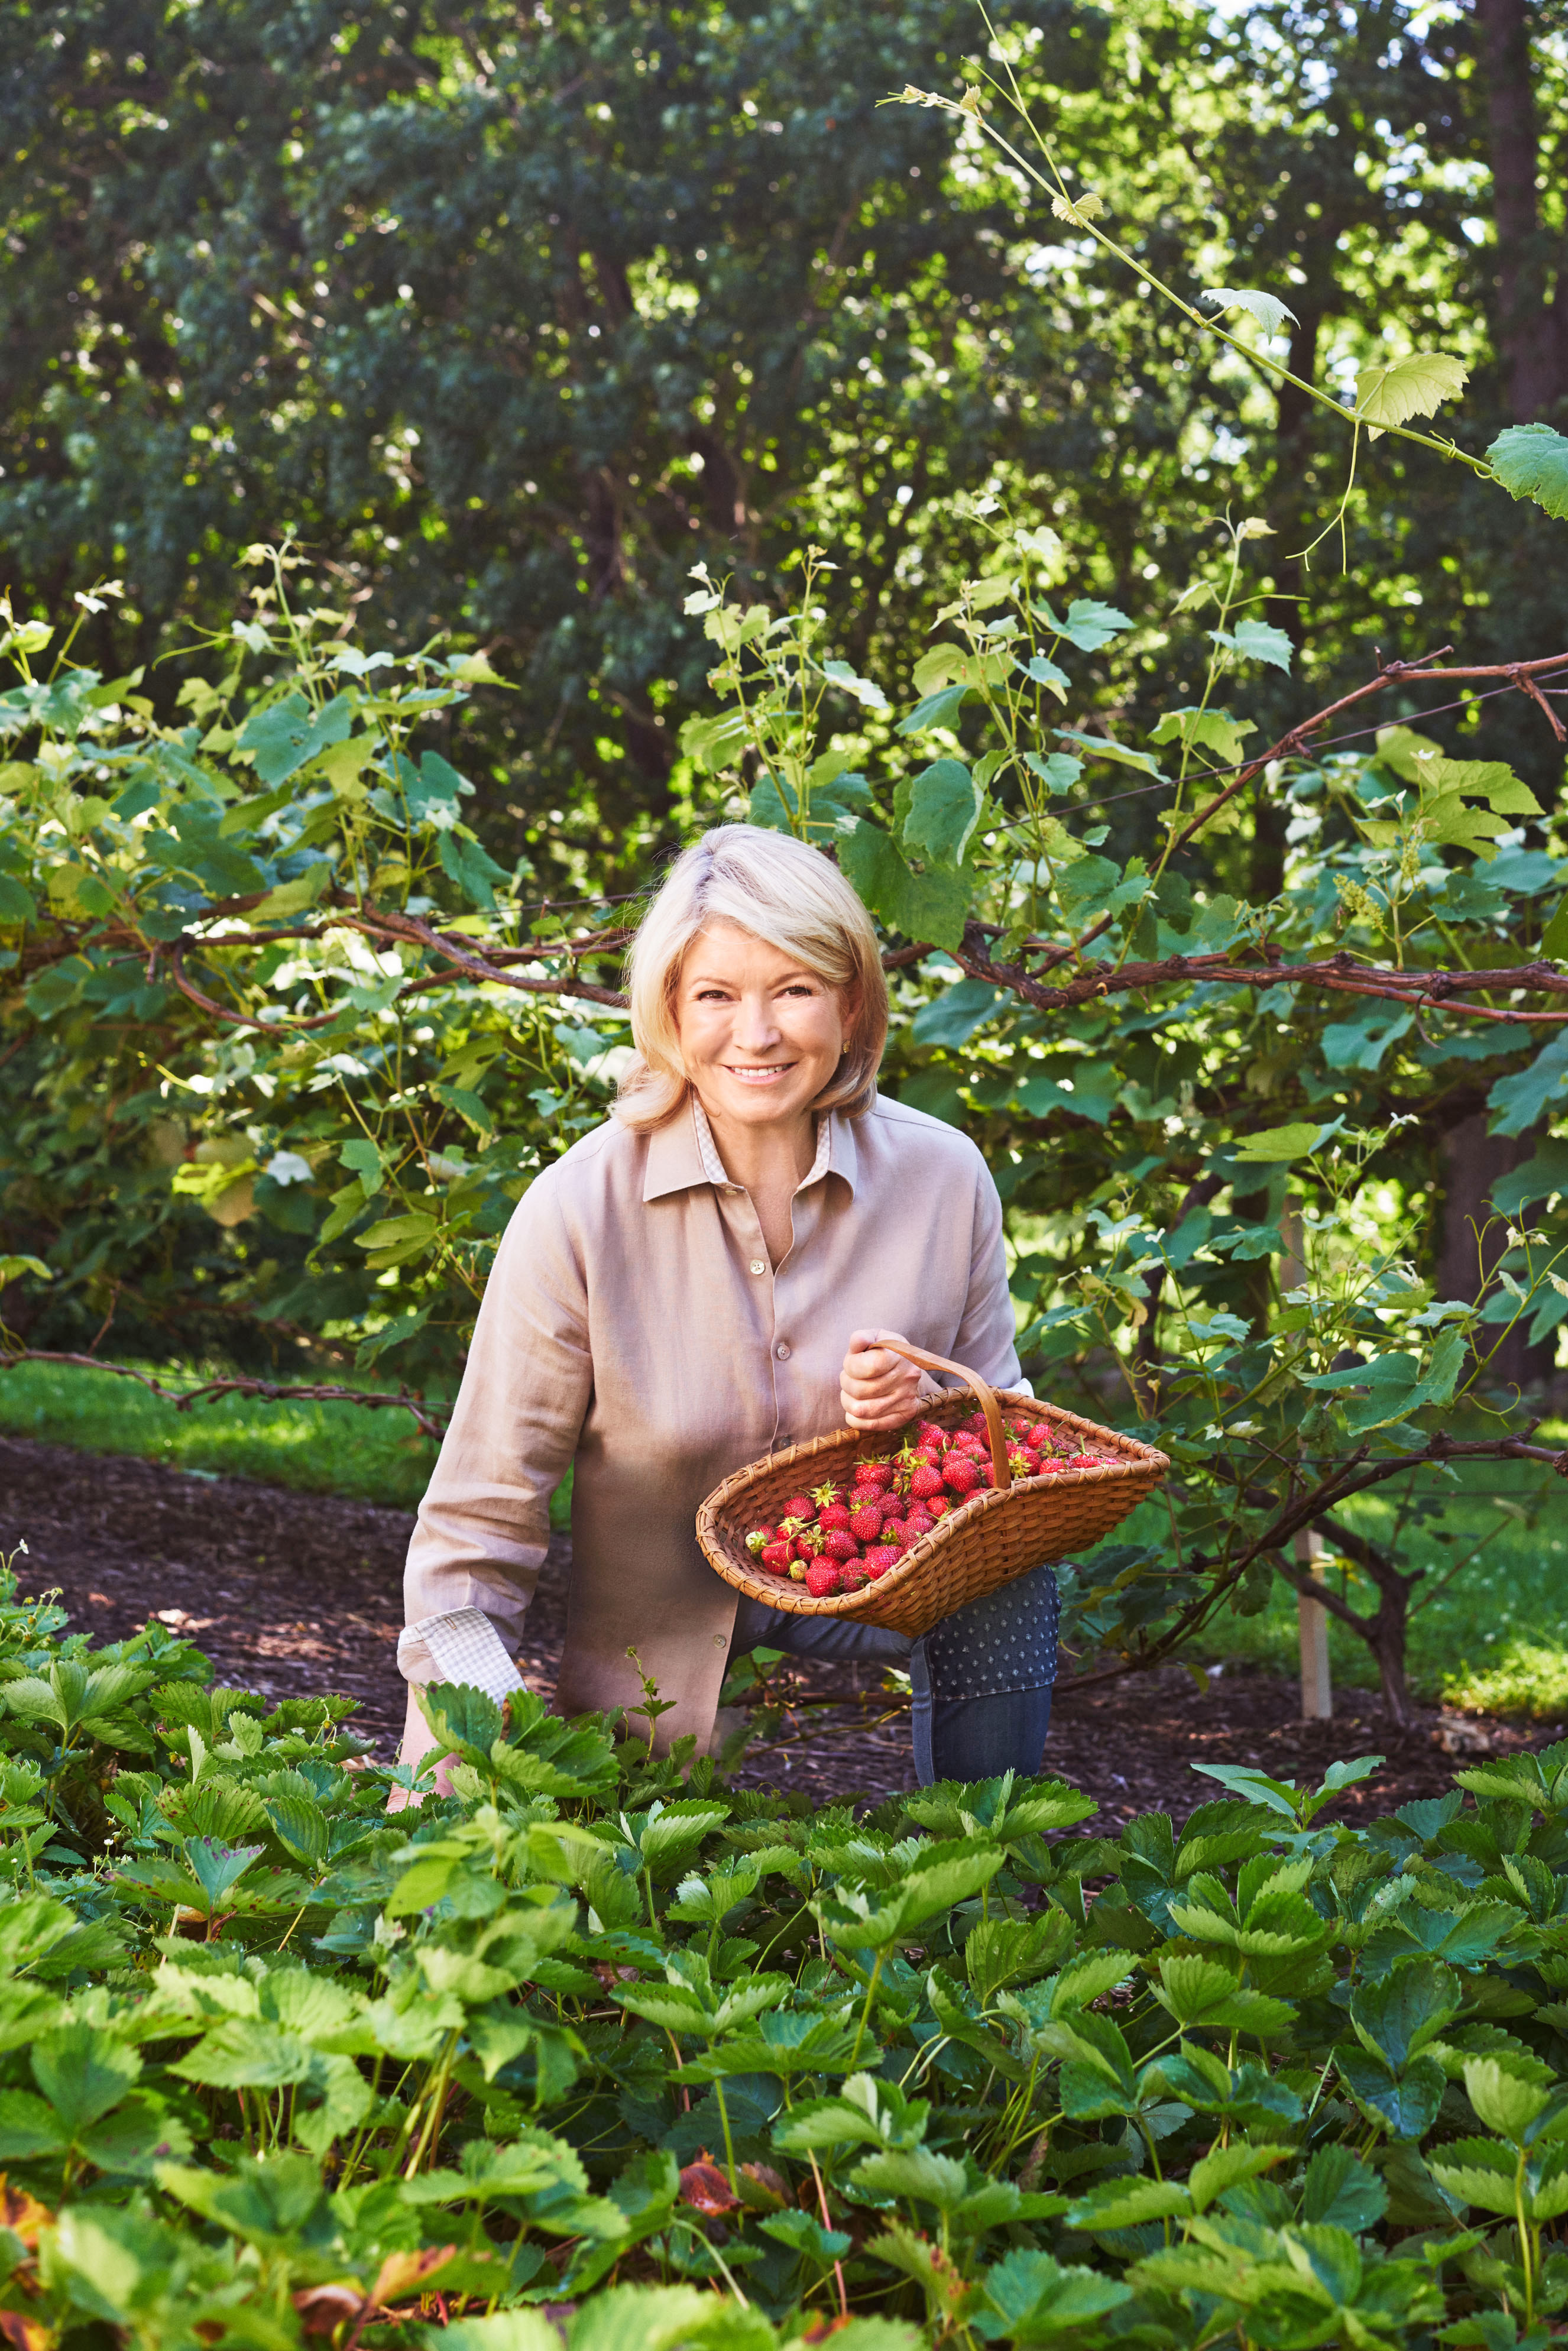 Martha Goes Strawberry-Picking—And Serves Up Her Favorite Recipes!